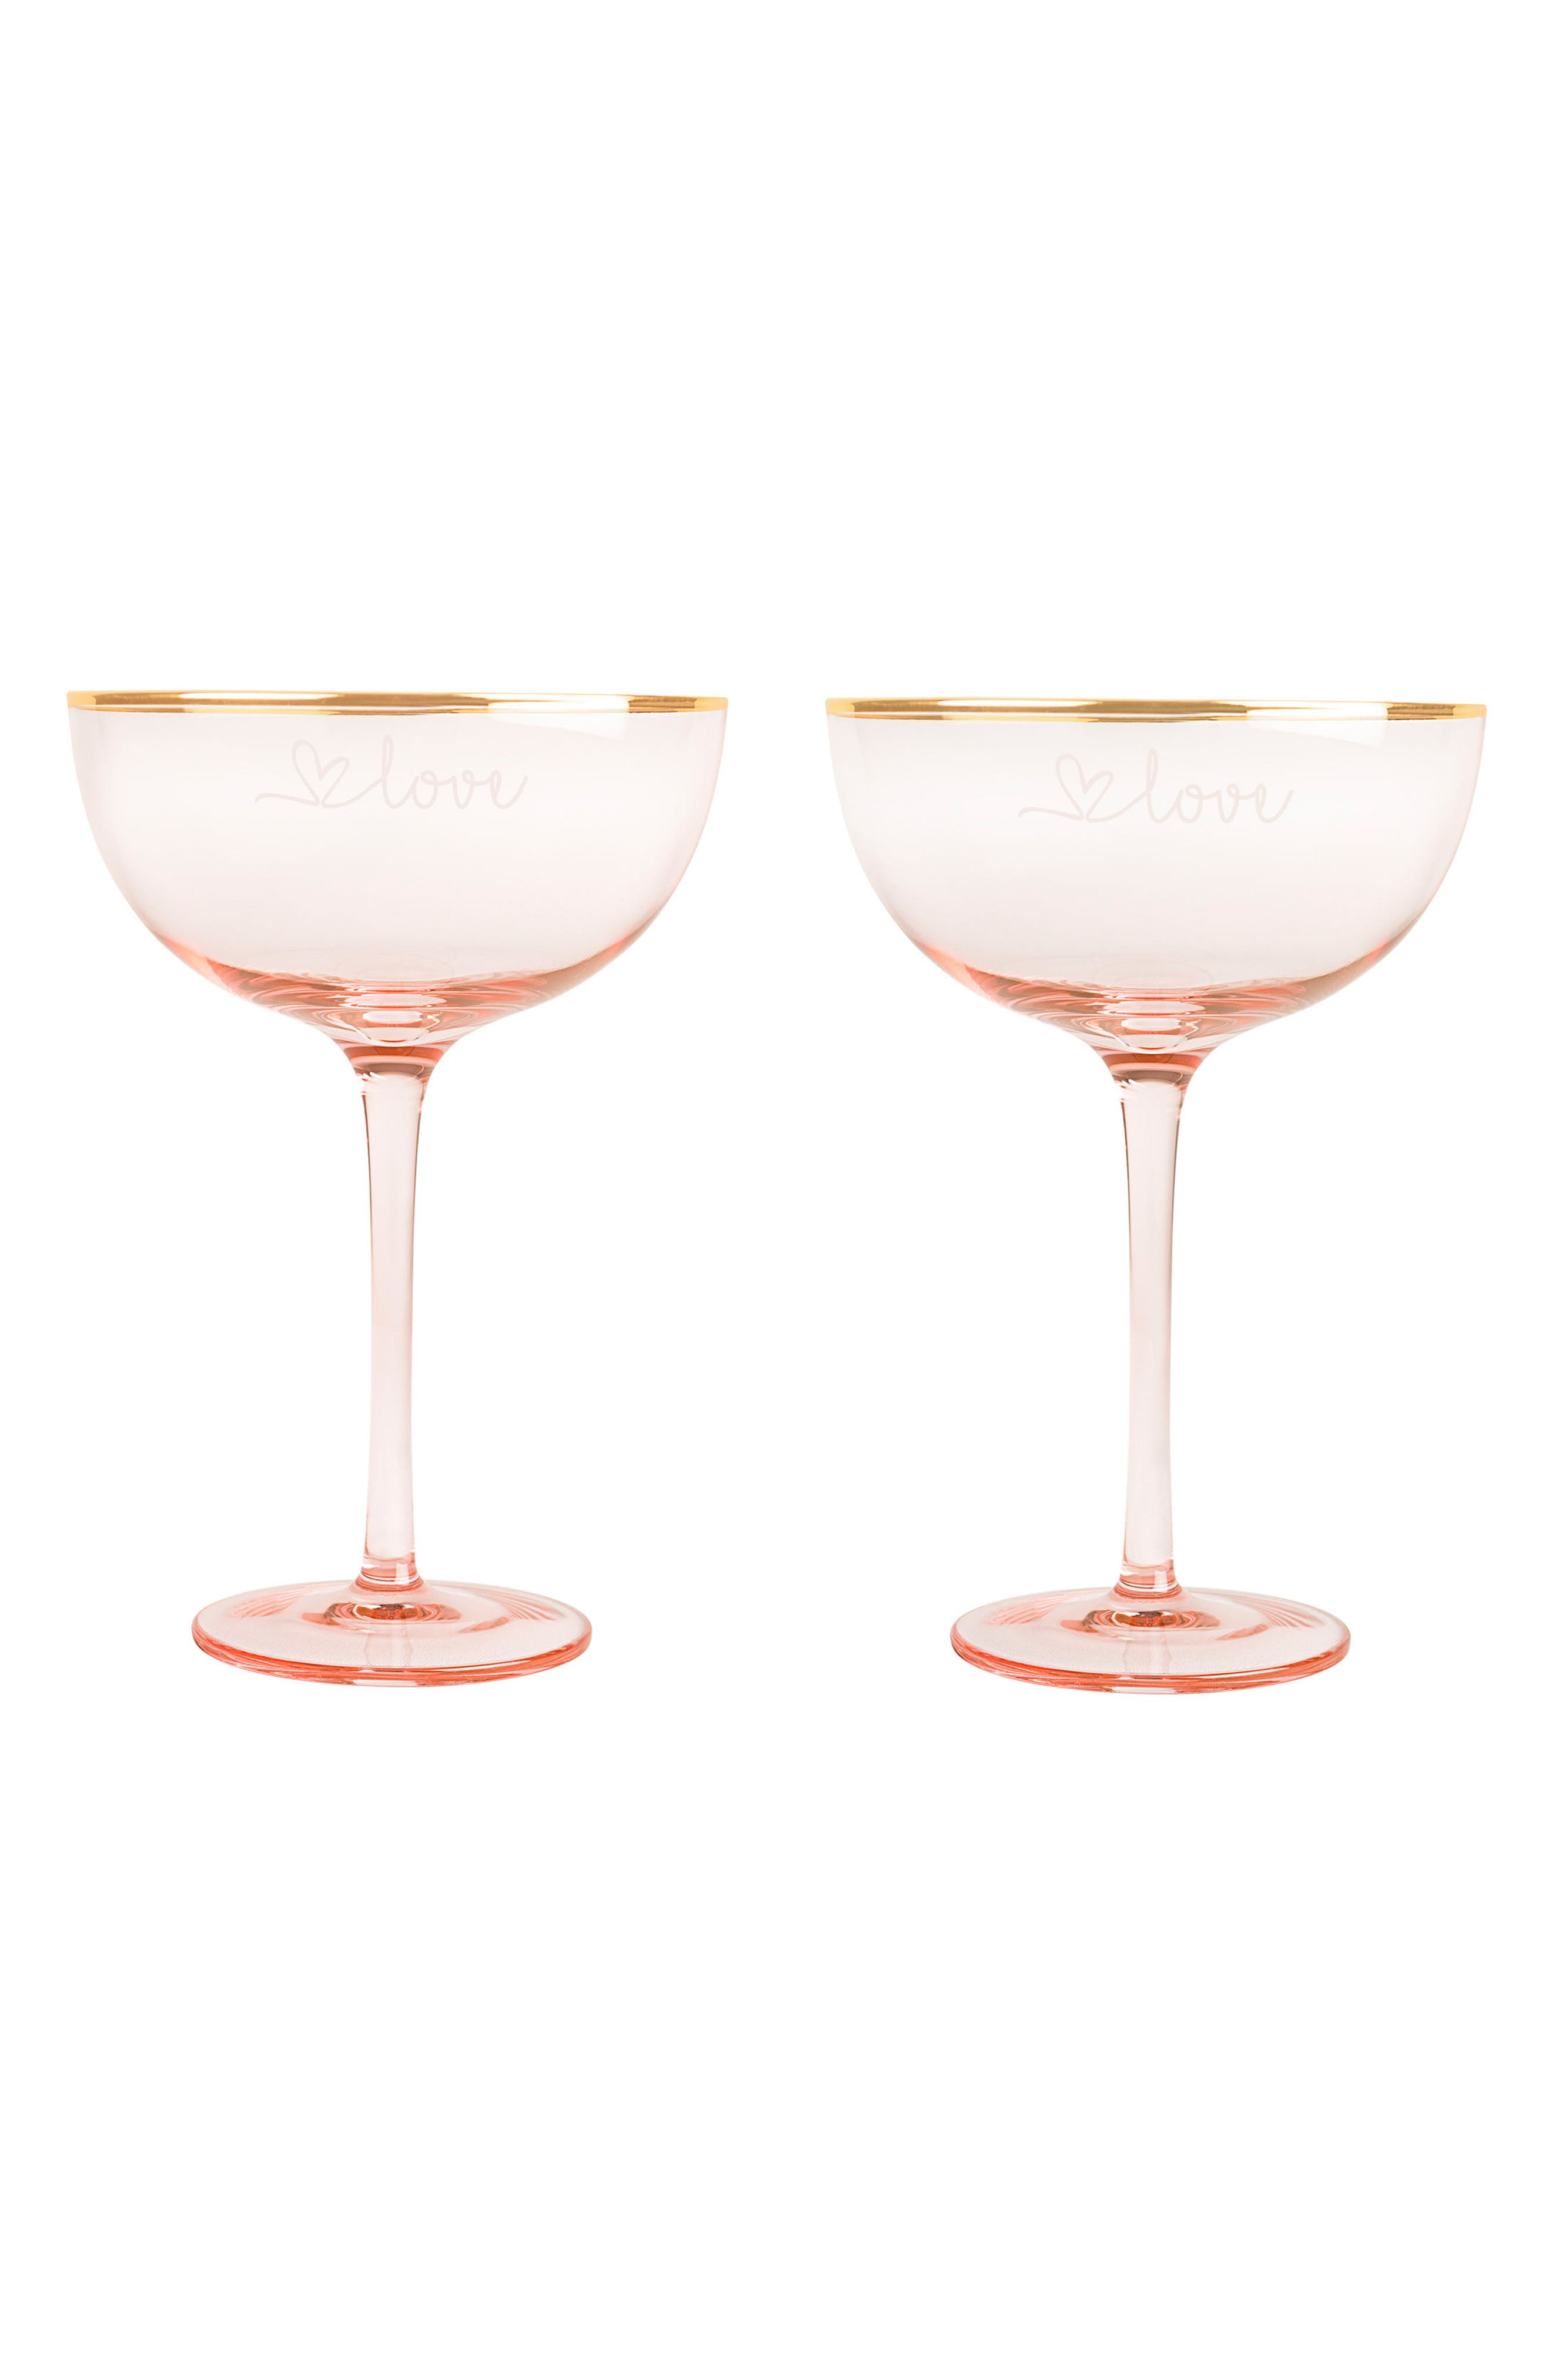 Main Image - Cathy's Concepts Love Set of 2 Champagne Coupes